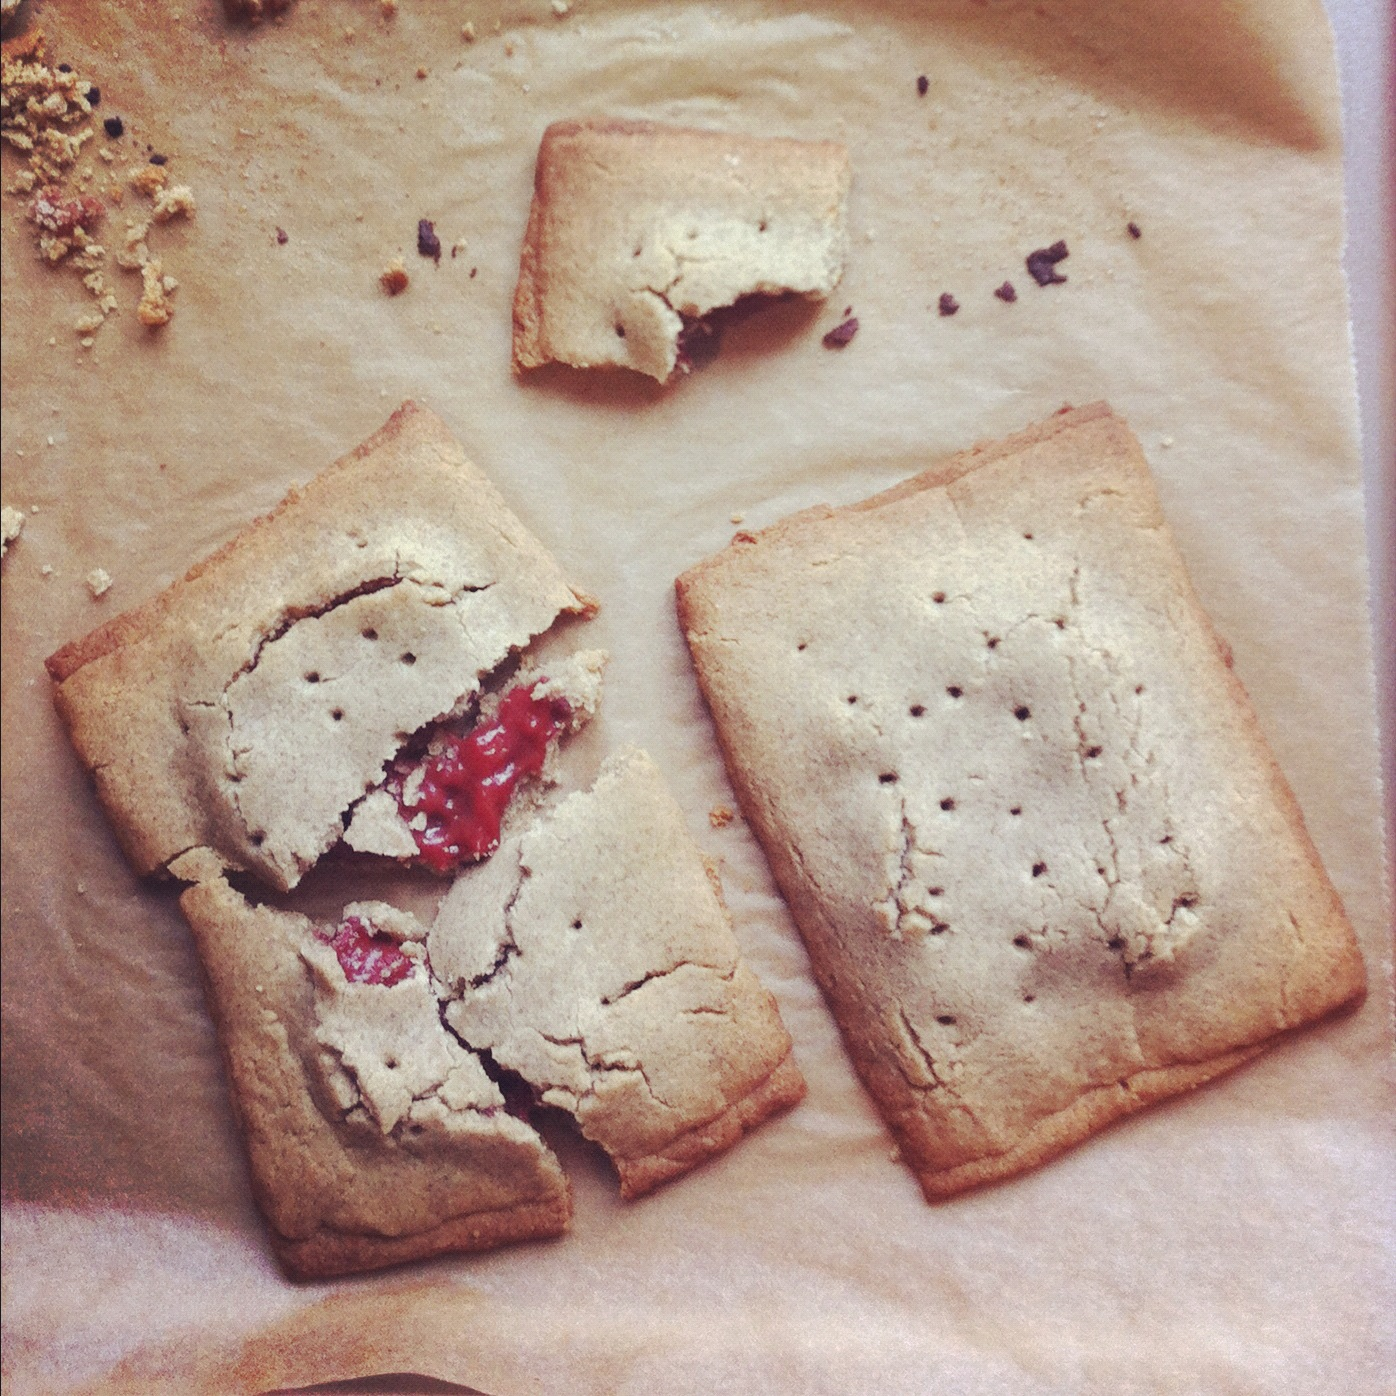 Healthy Homemade Pop Tarts - Desserts With Benefits